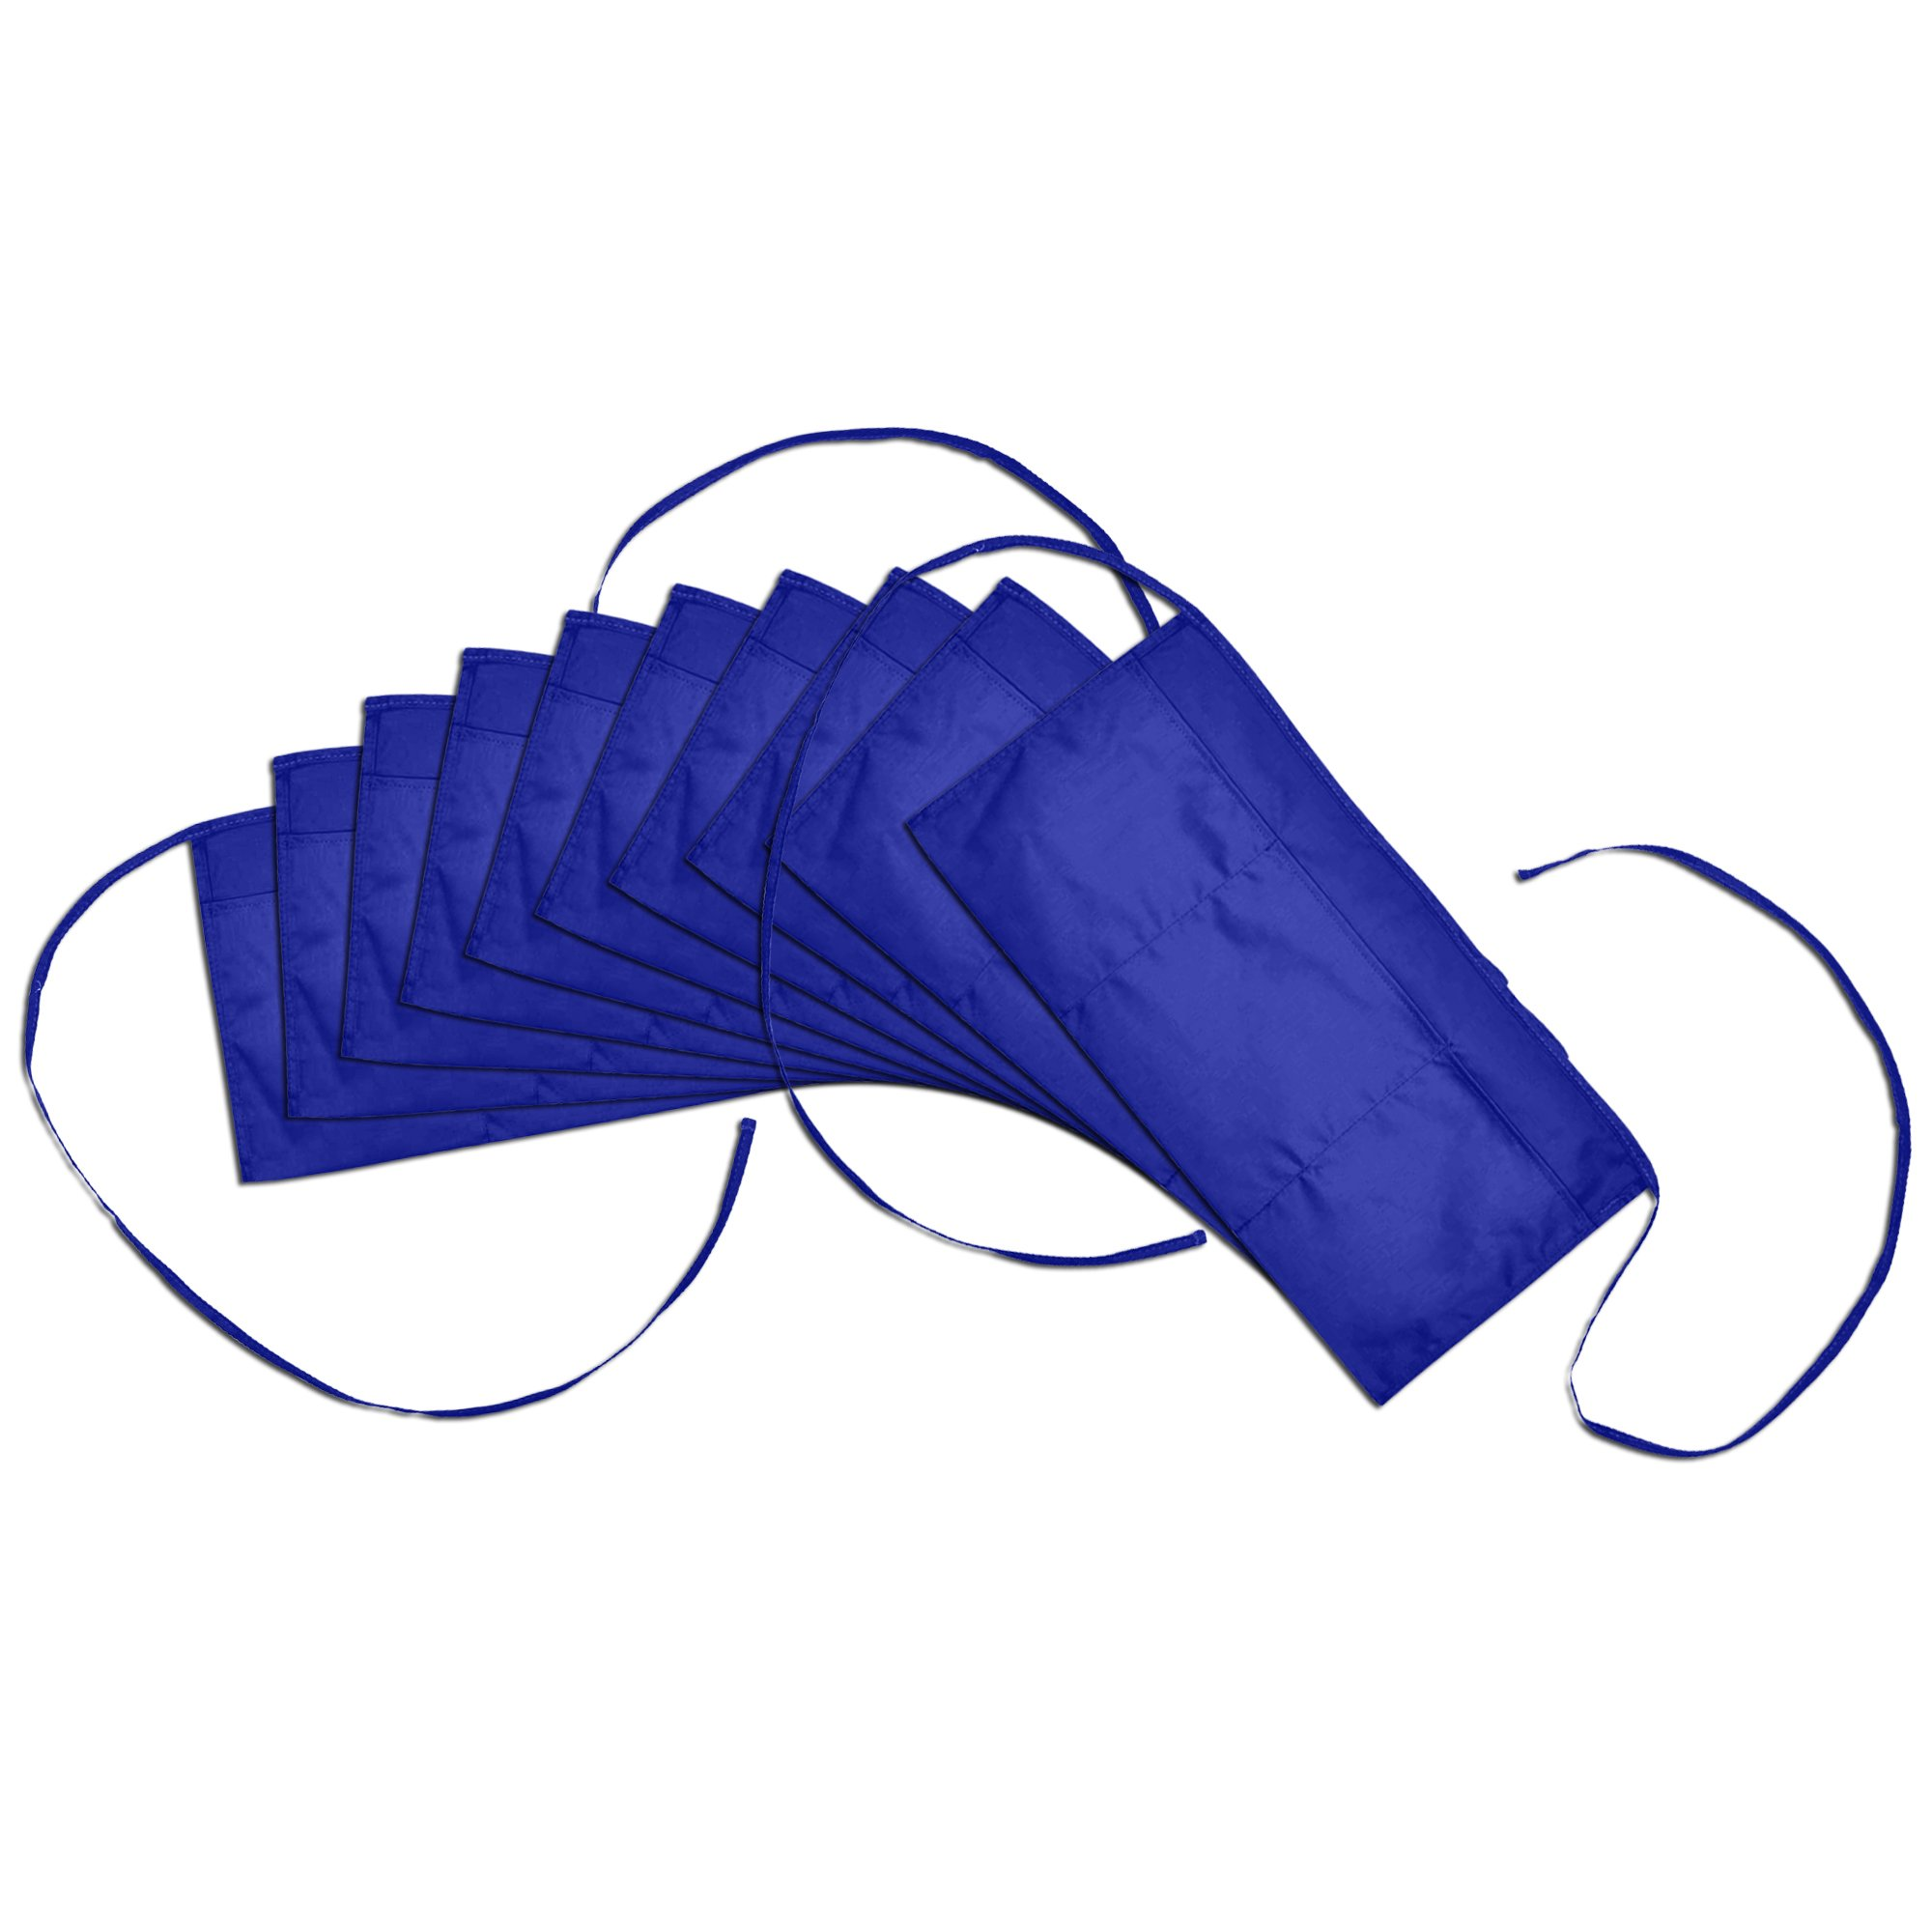 Waist Aprons Commercial Restaurant Home Bib Spun Poly Cotton Kitchen (3 Pockets) in Royal Blue 10 Pack